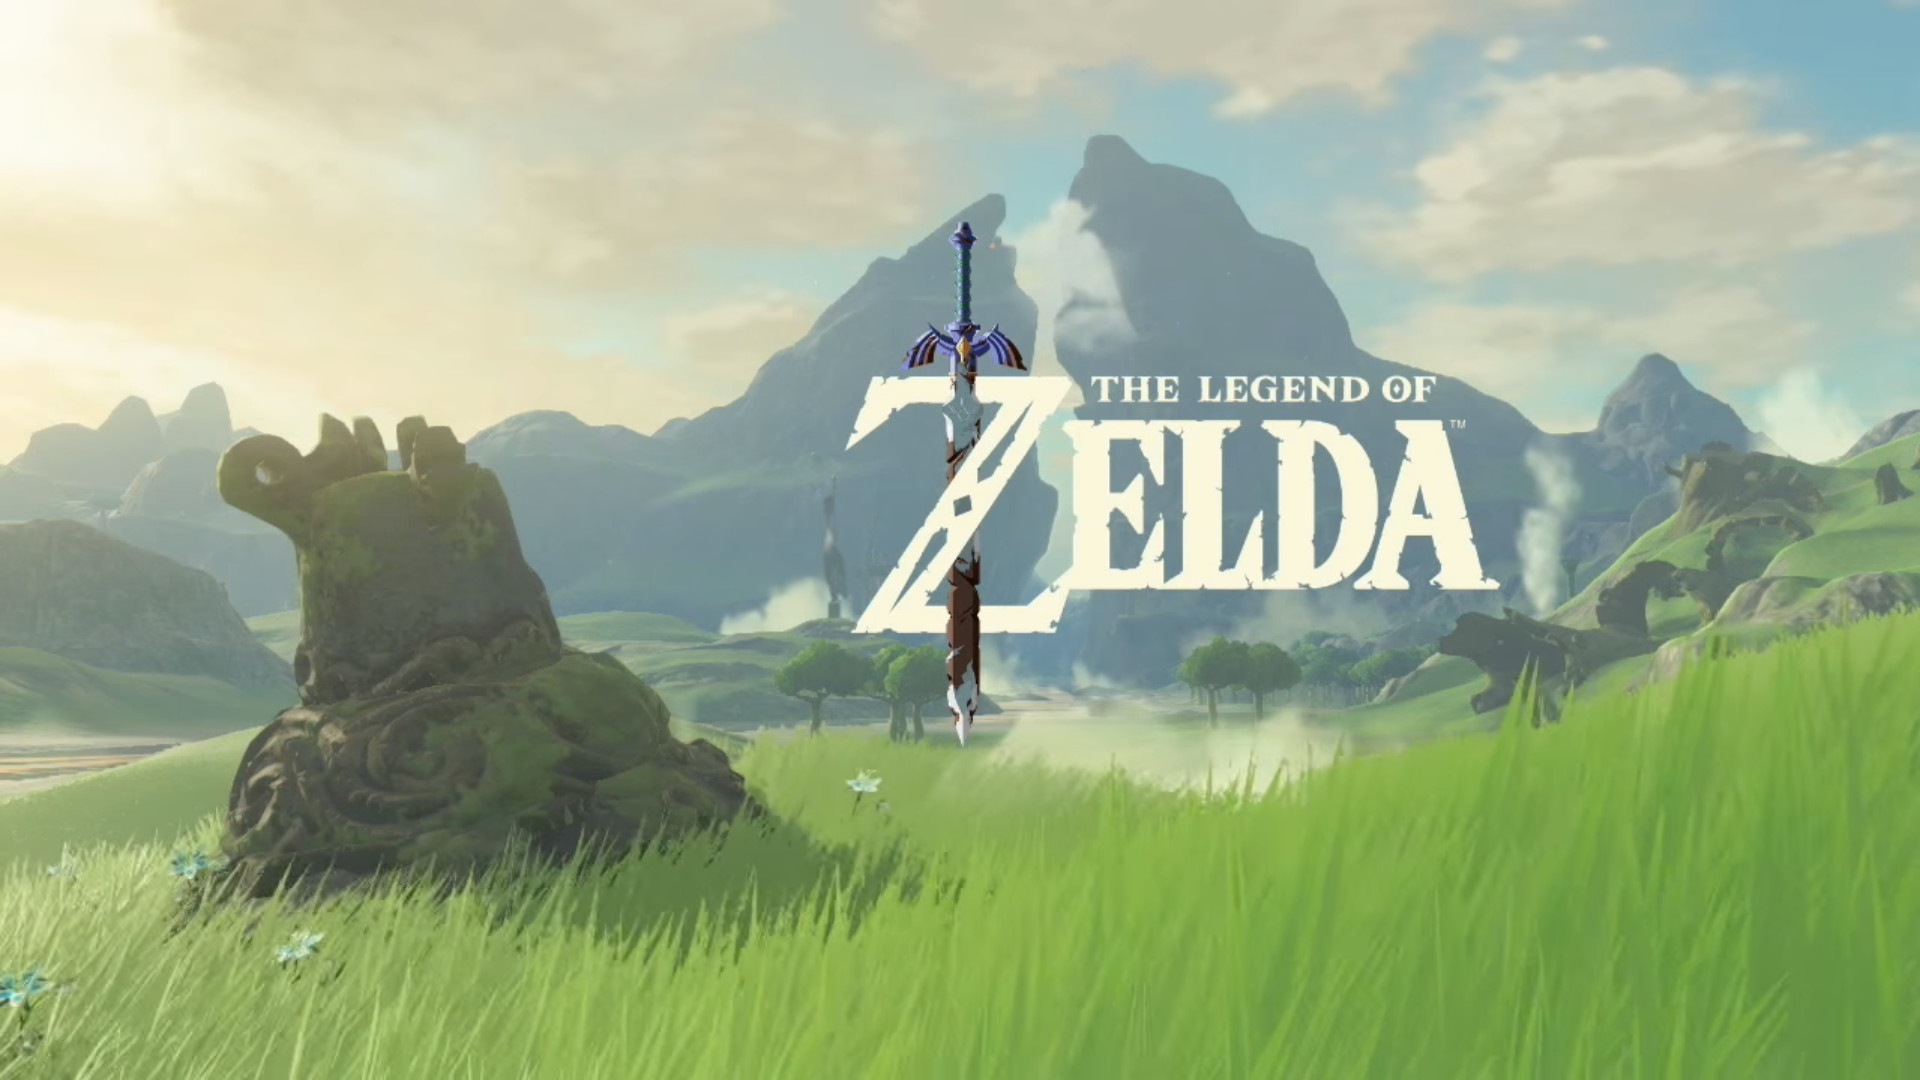 1920x1080  The Legend of Zelda: Breath of the Wild Wallpapers